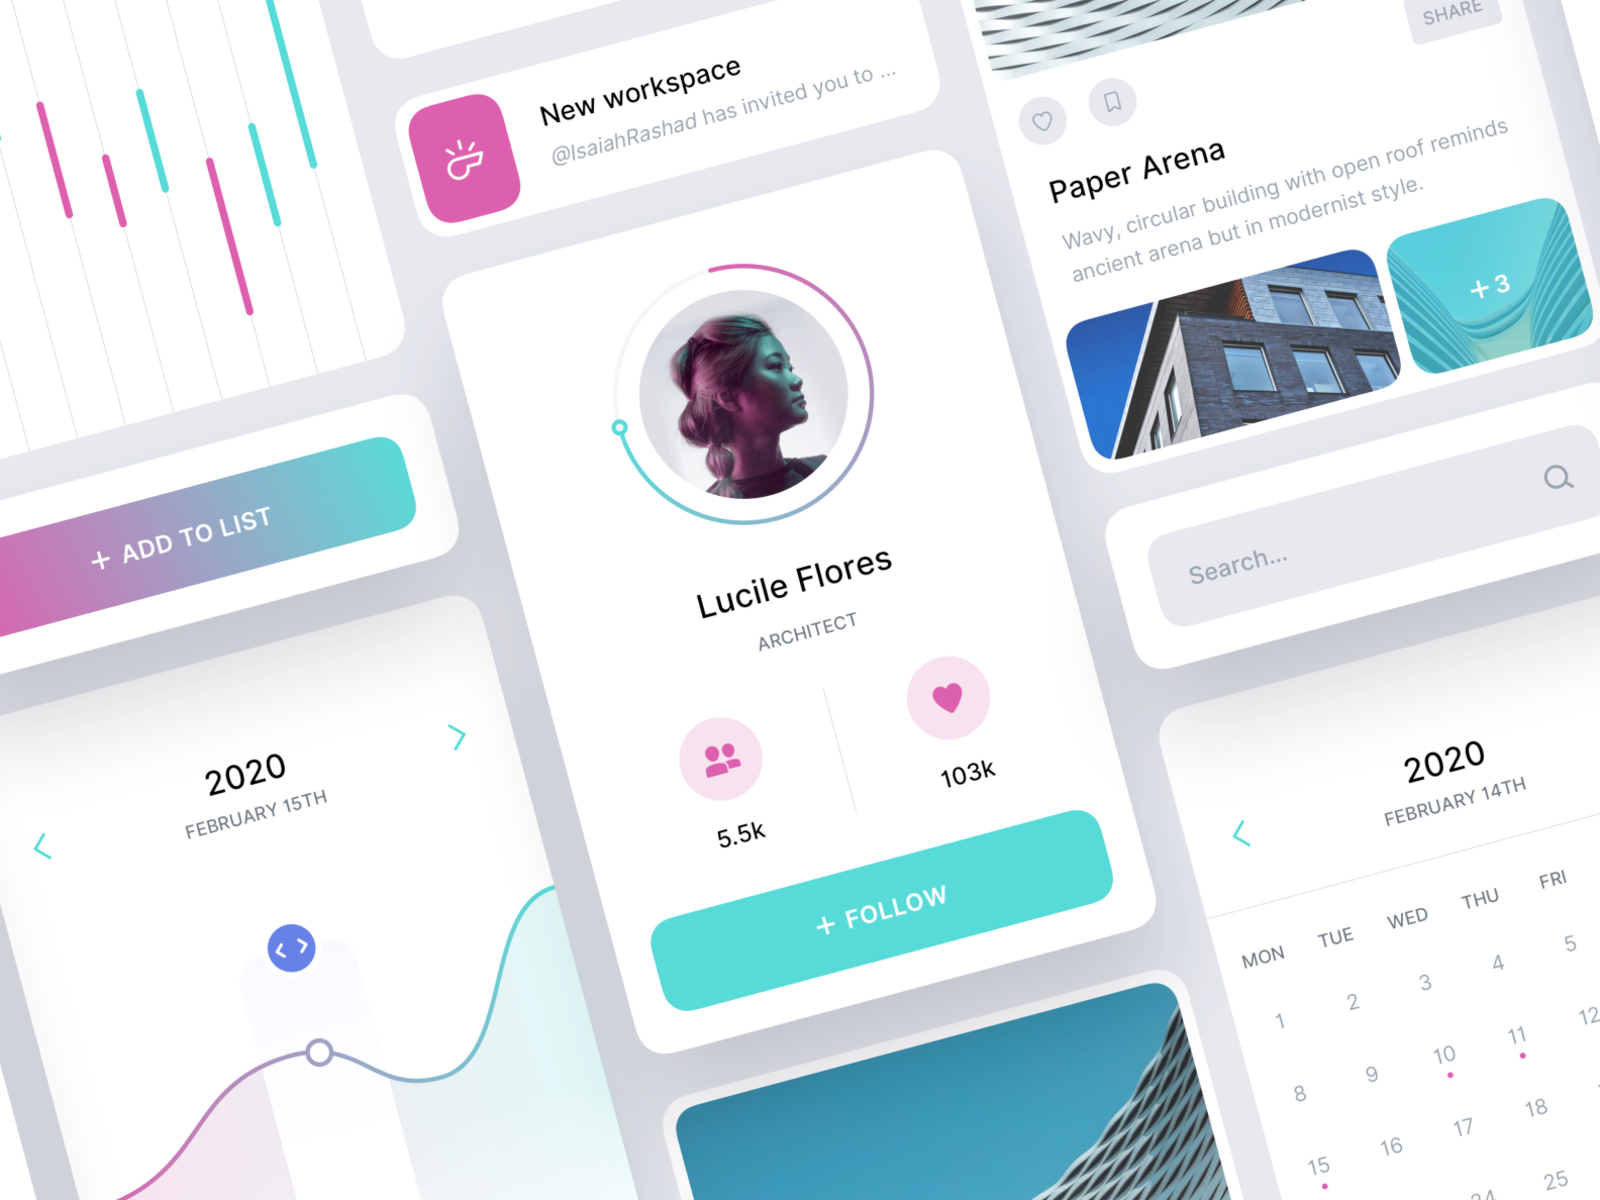 Dark & Light UI Components for Sketch - Just a simple freebie with components you can use across your design, enjoy! File contains both light and dark version of the widgets.